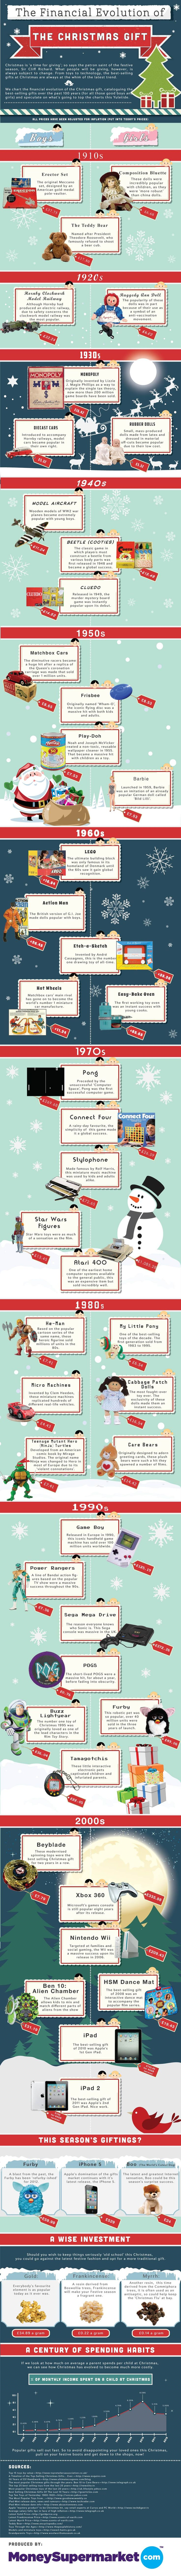 Financial Evolution of Christmas Presents